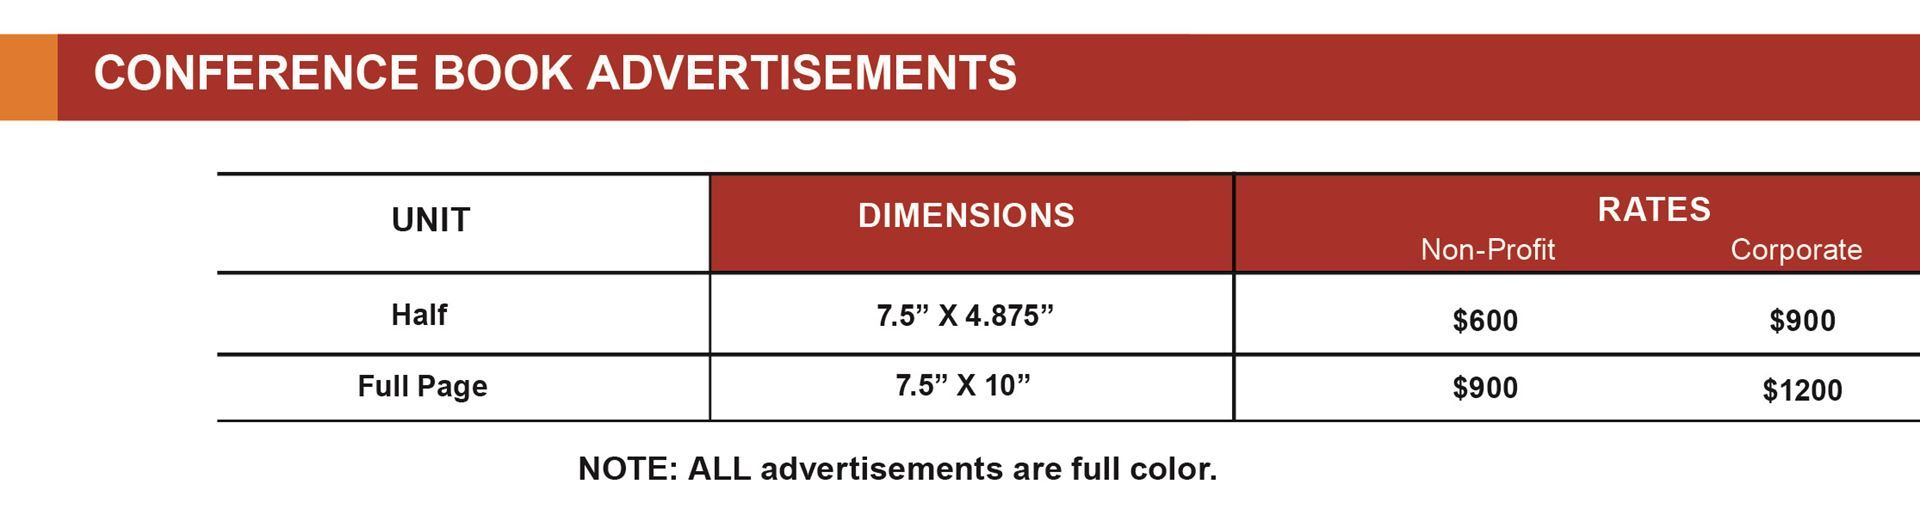 conference advertisement fees